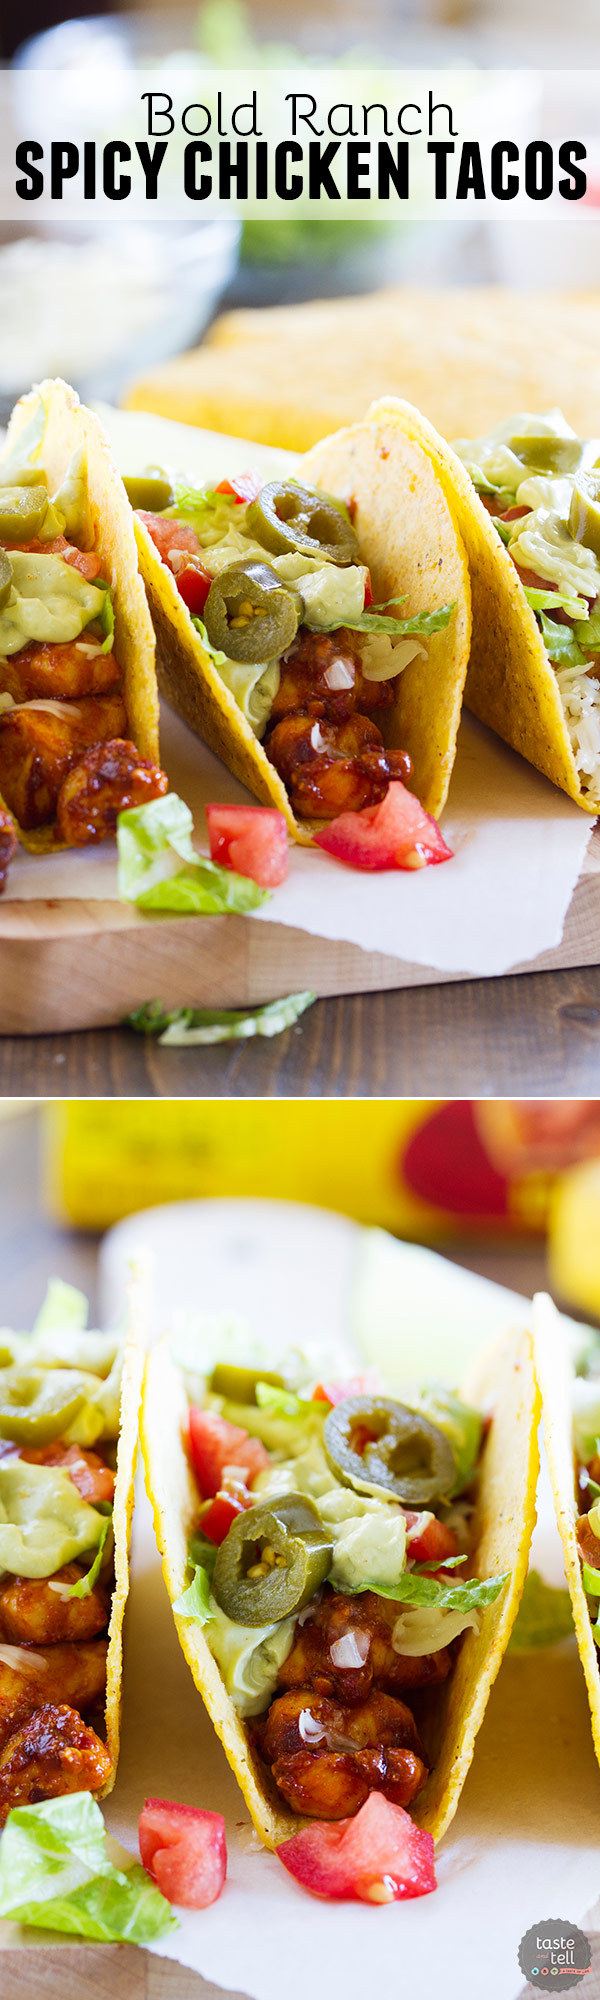 A little bit spicy and a little bit cool, these Bold Ranch Spicy Chicken Tacos have it all! Cool off from the spiciness of the chicken with the ranch taco shells. The creamy avocado sauce adds the perfect finish!